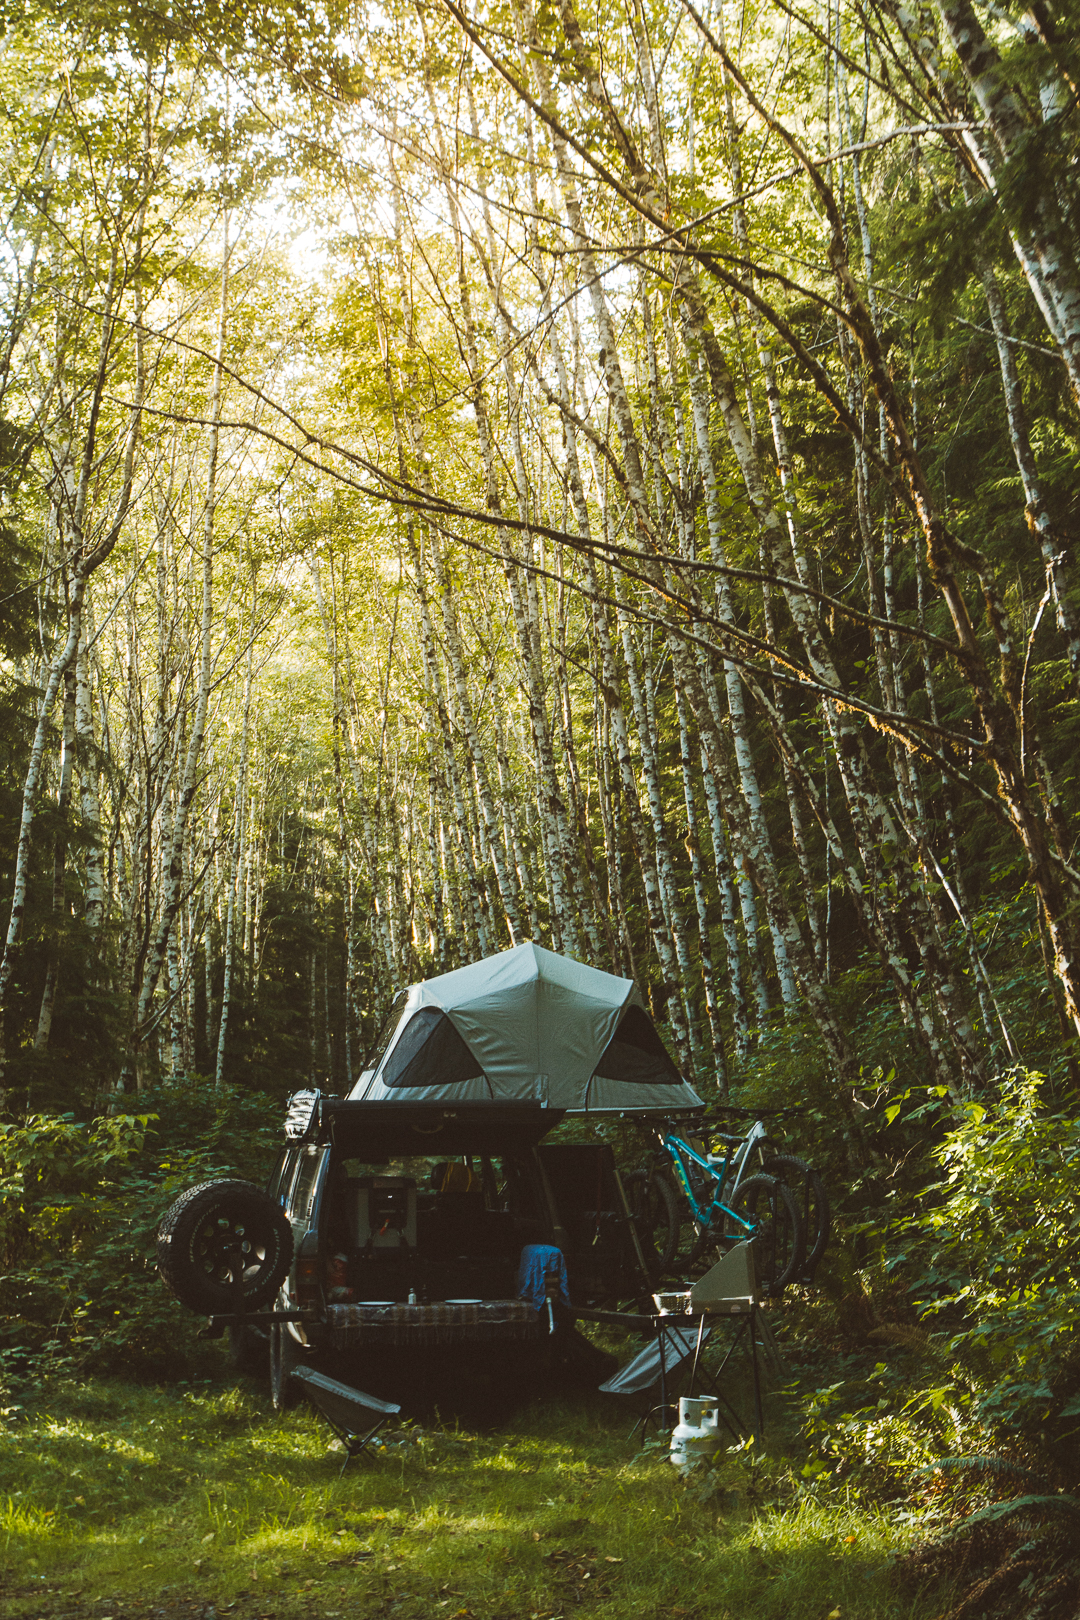 Car Camping Checklist by Conscious by Chloé